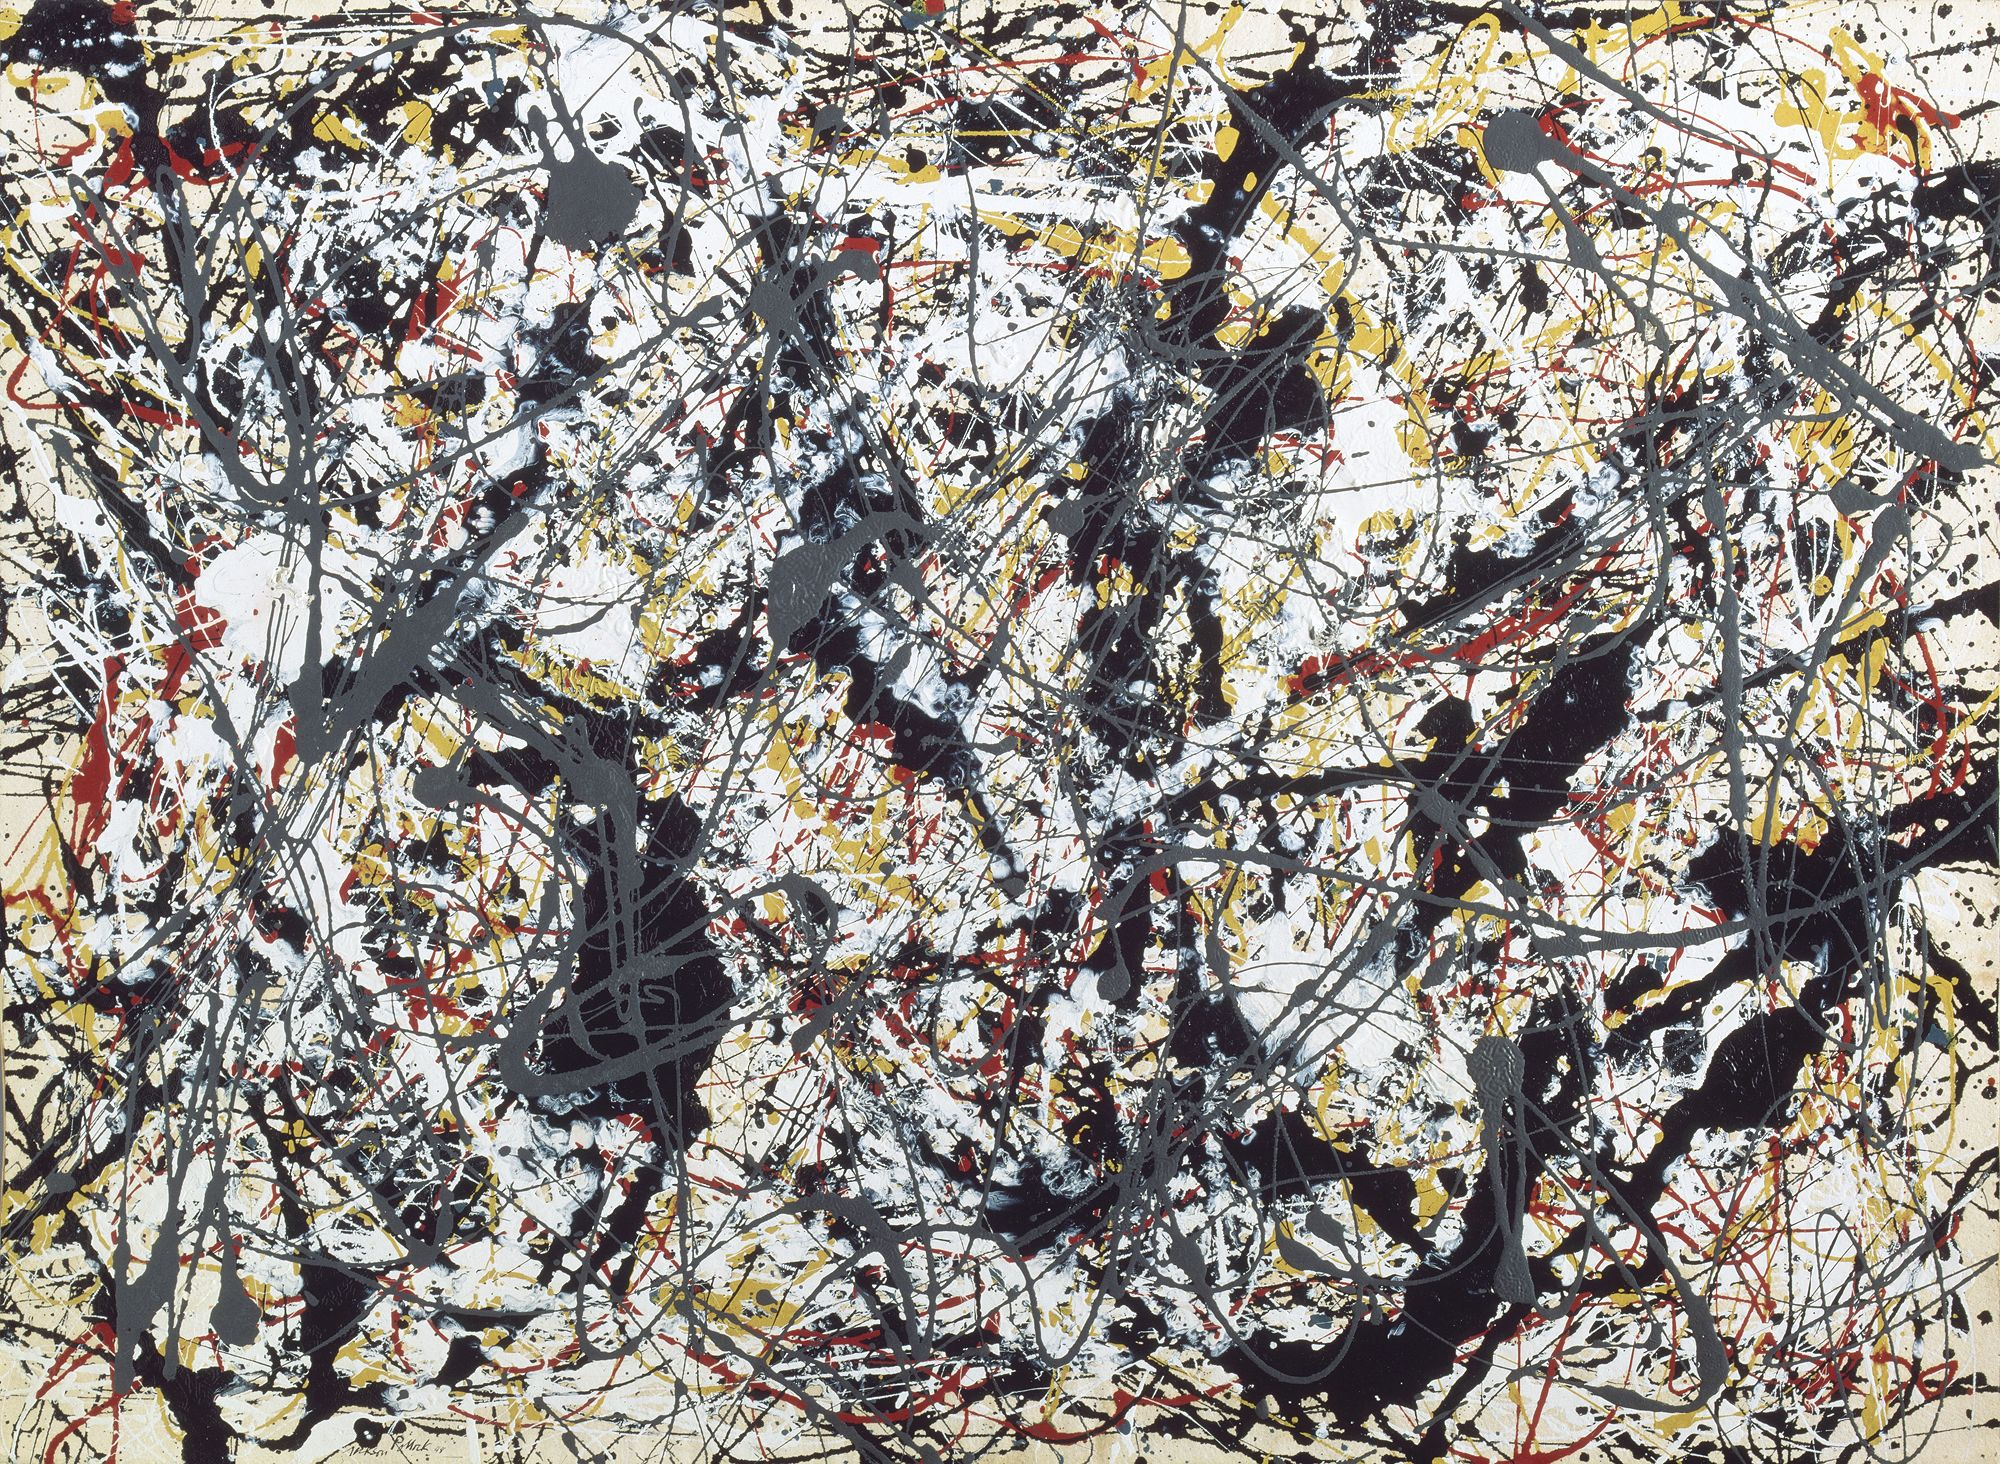 peinture argent sur noir blanc jaune et rouge jackson pollock 1912 1956. Black Bedroom Furniture Sets. Home Design Ideas